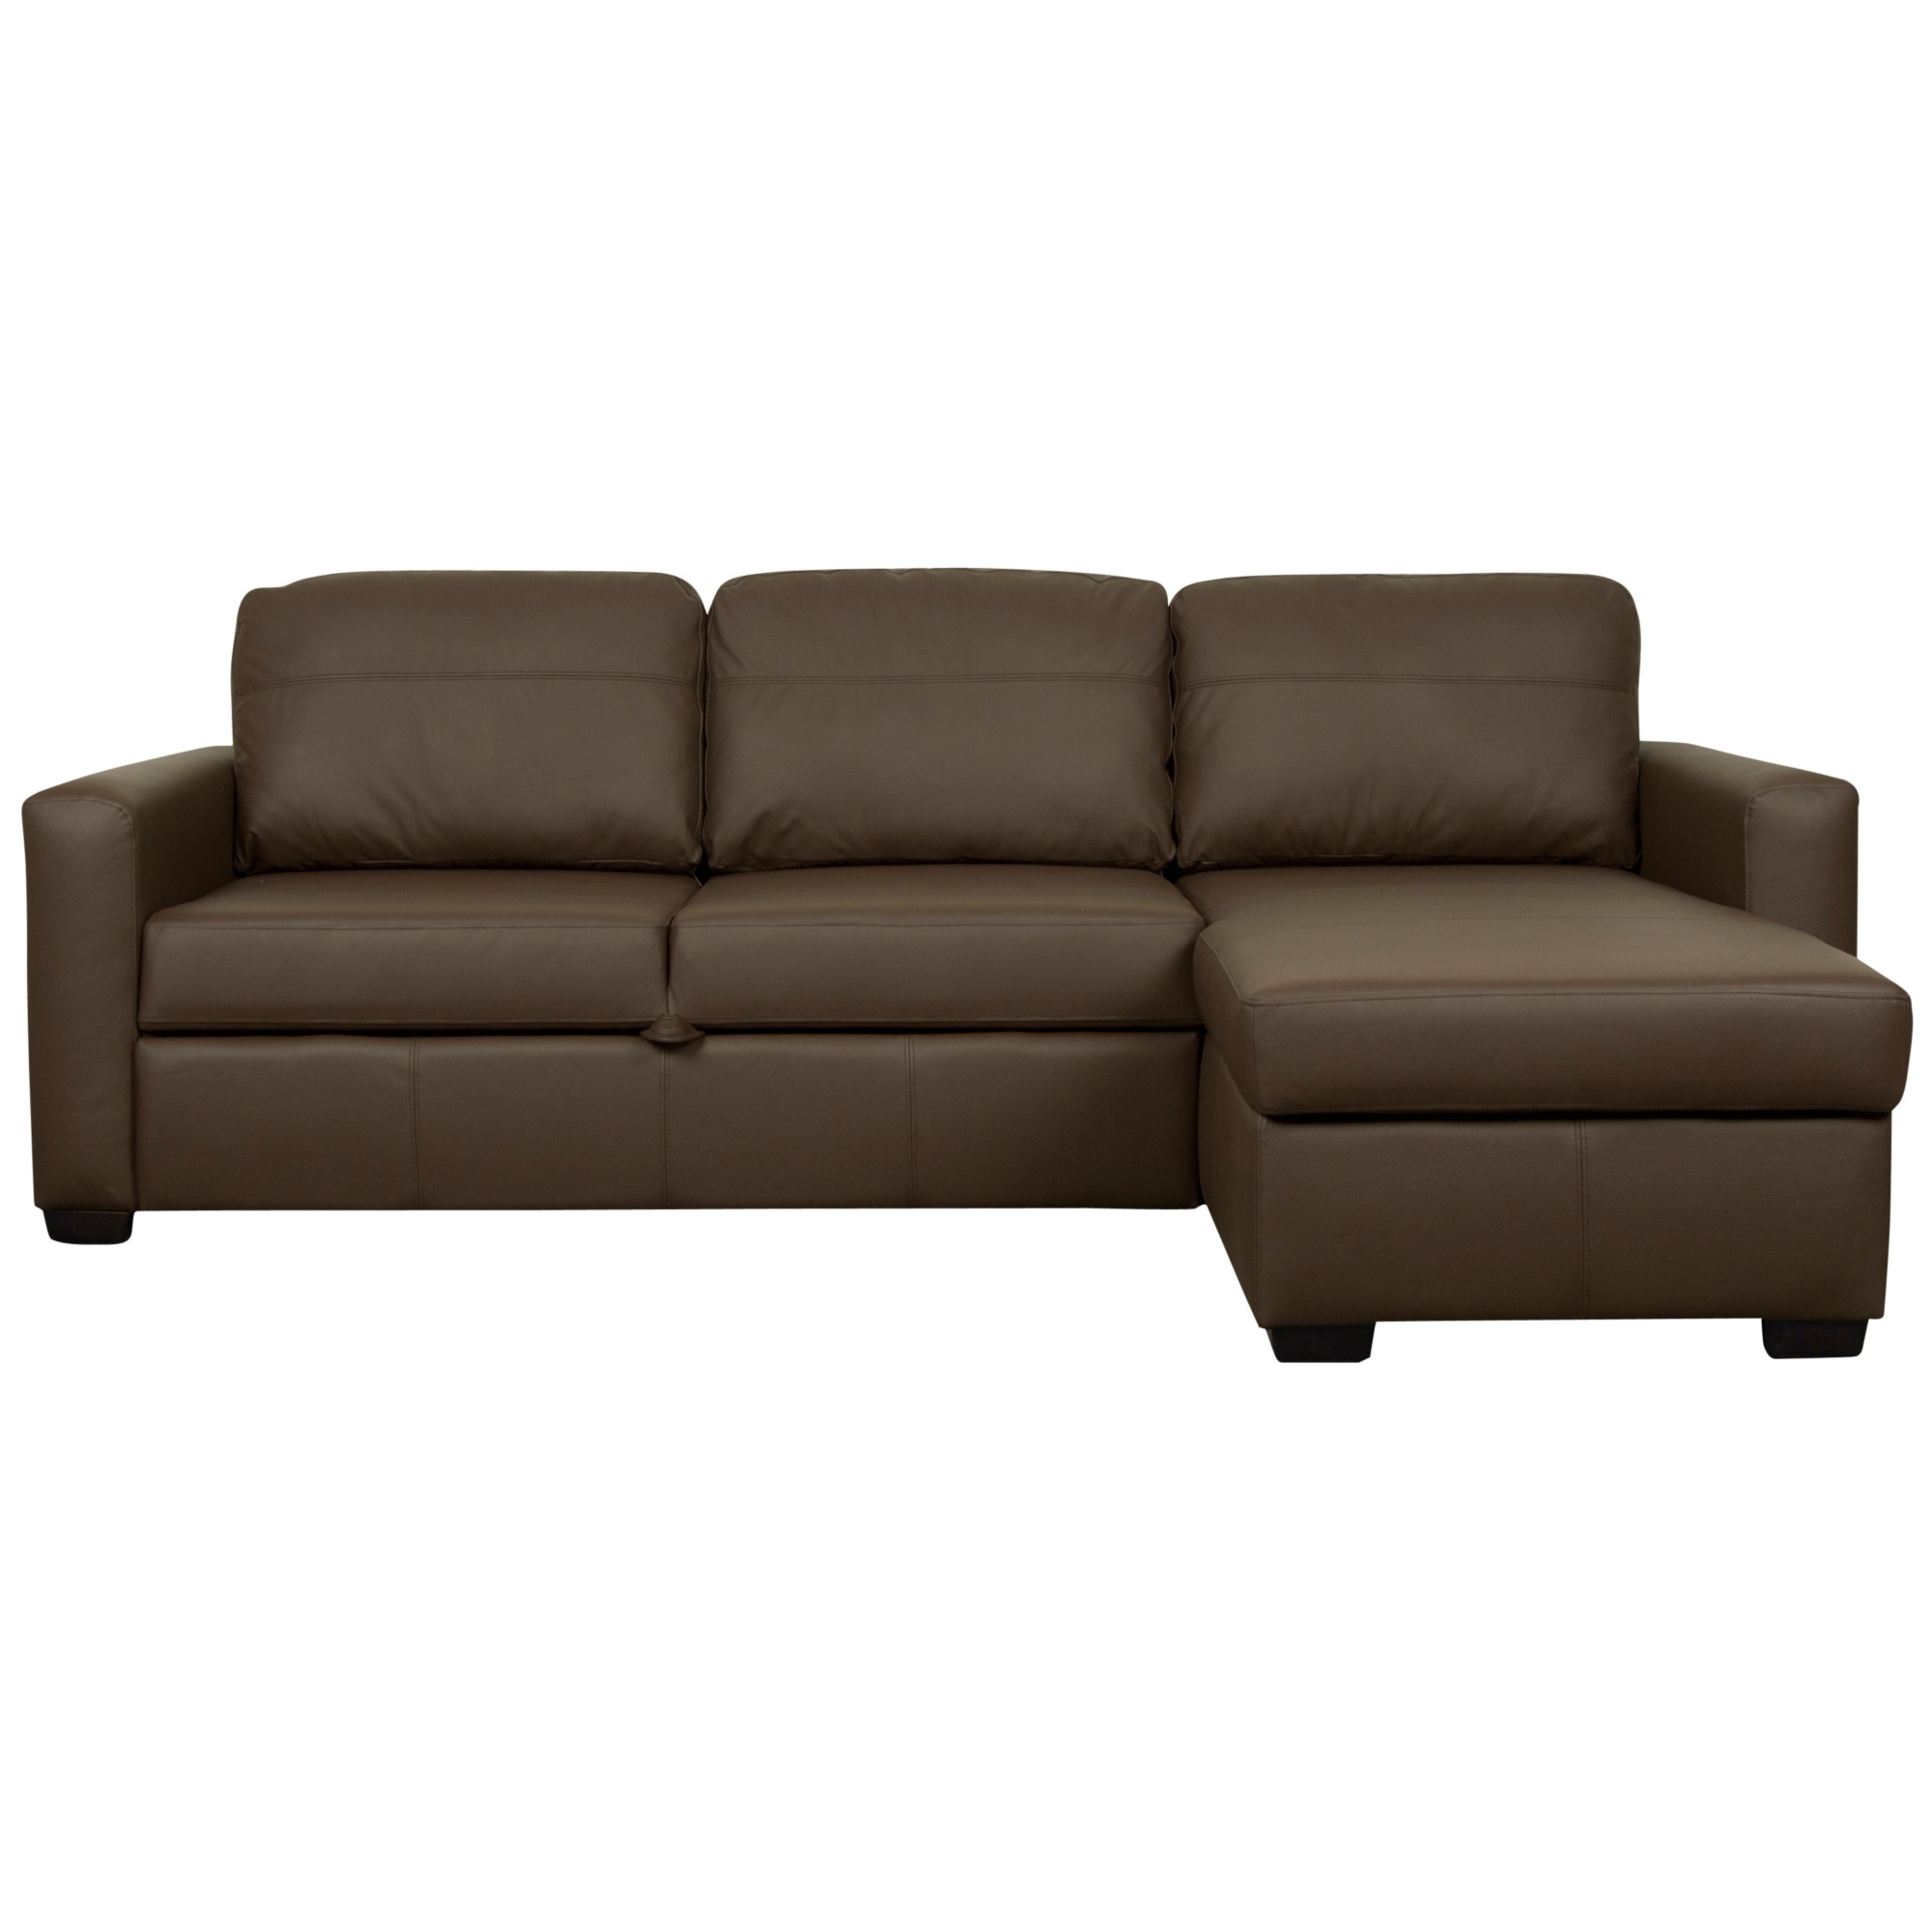 John Lewis Sacha Grand Leather Sofa Bed